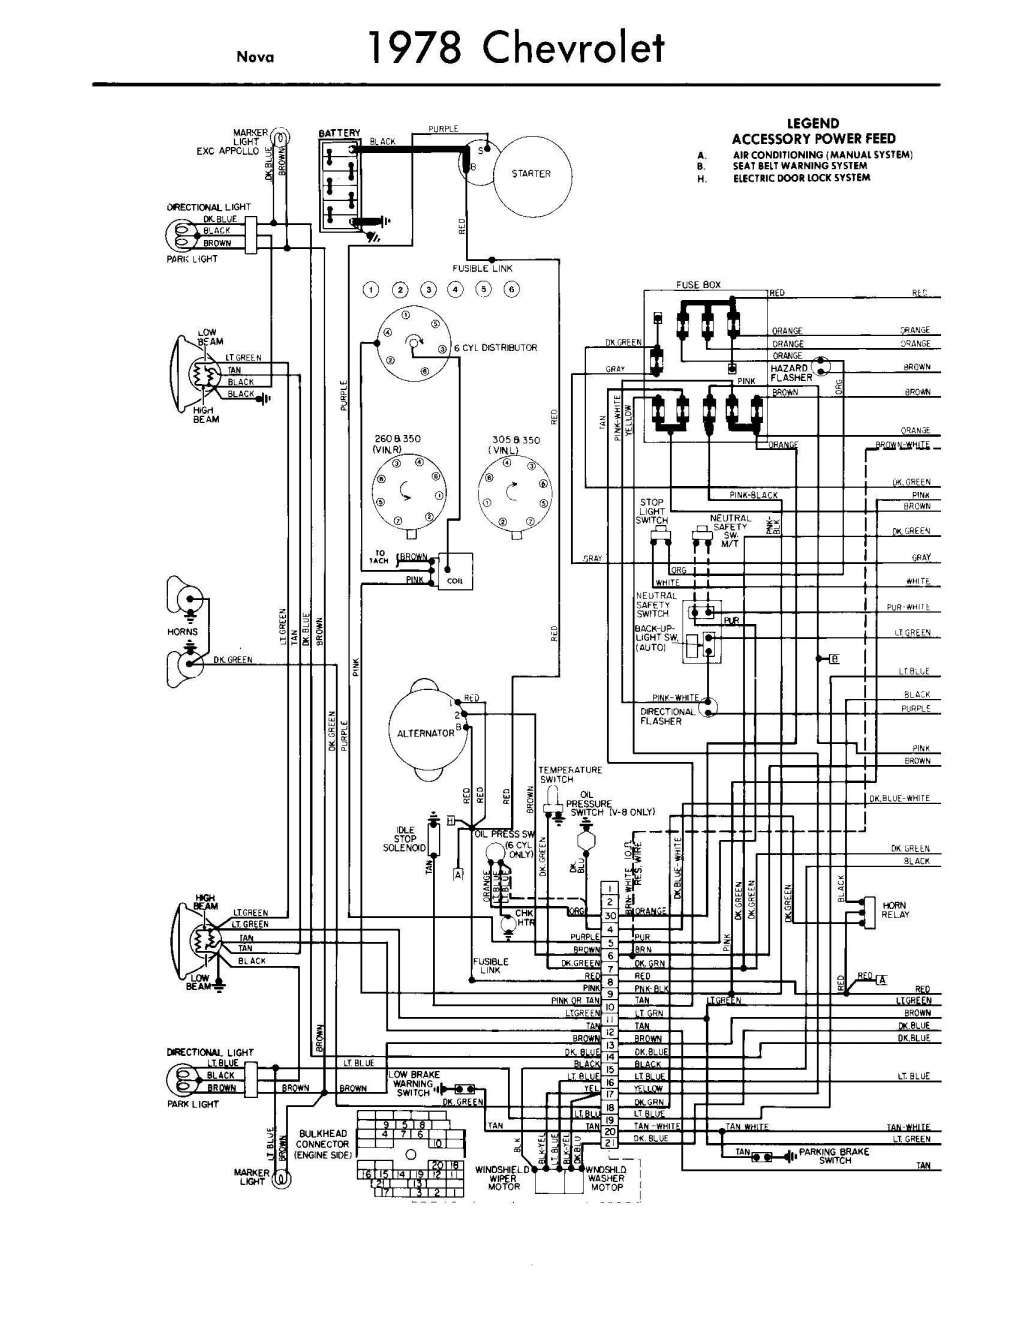 flatbed trailer wiring diagram free picture schematic 1979 4x4 chevy trucks silverado fuse diagram wiring diagram data  1979 4x4 chevy trucks silverado fuse